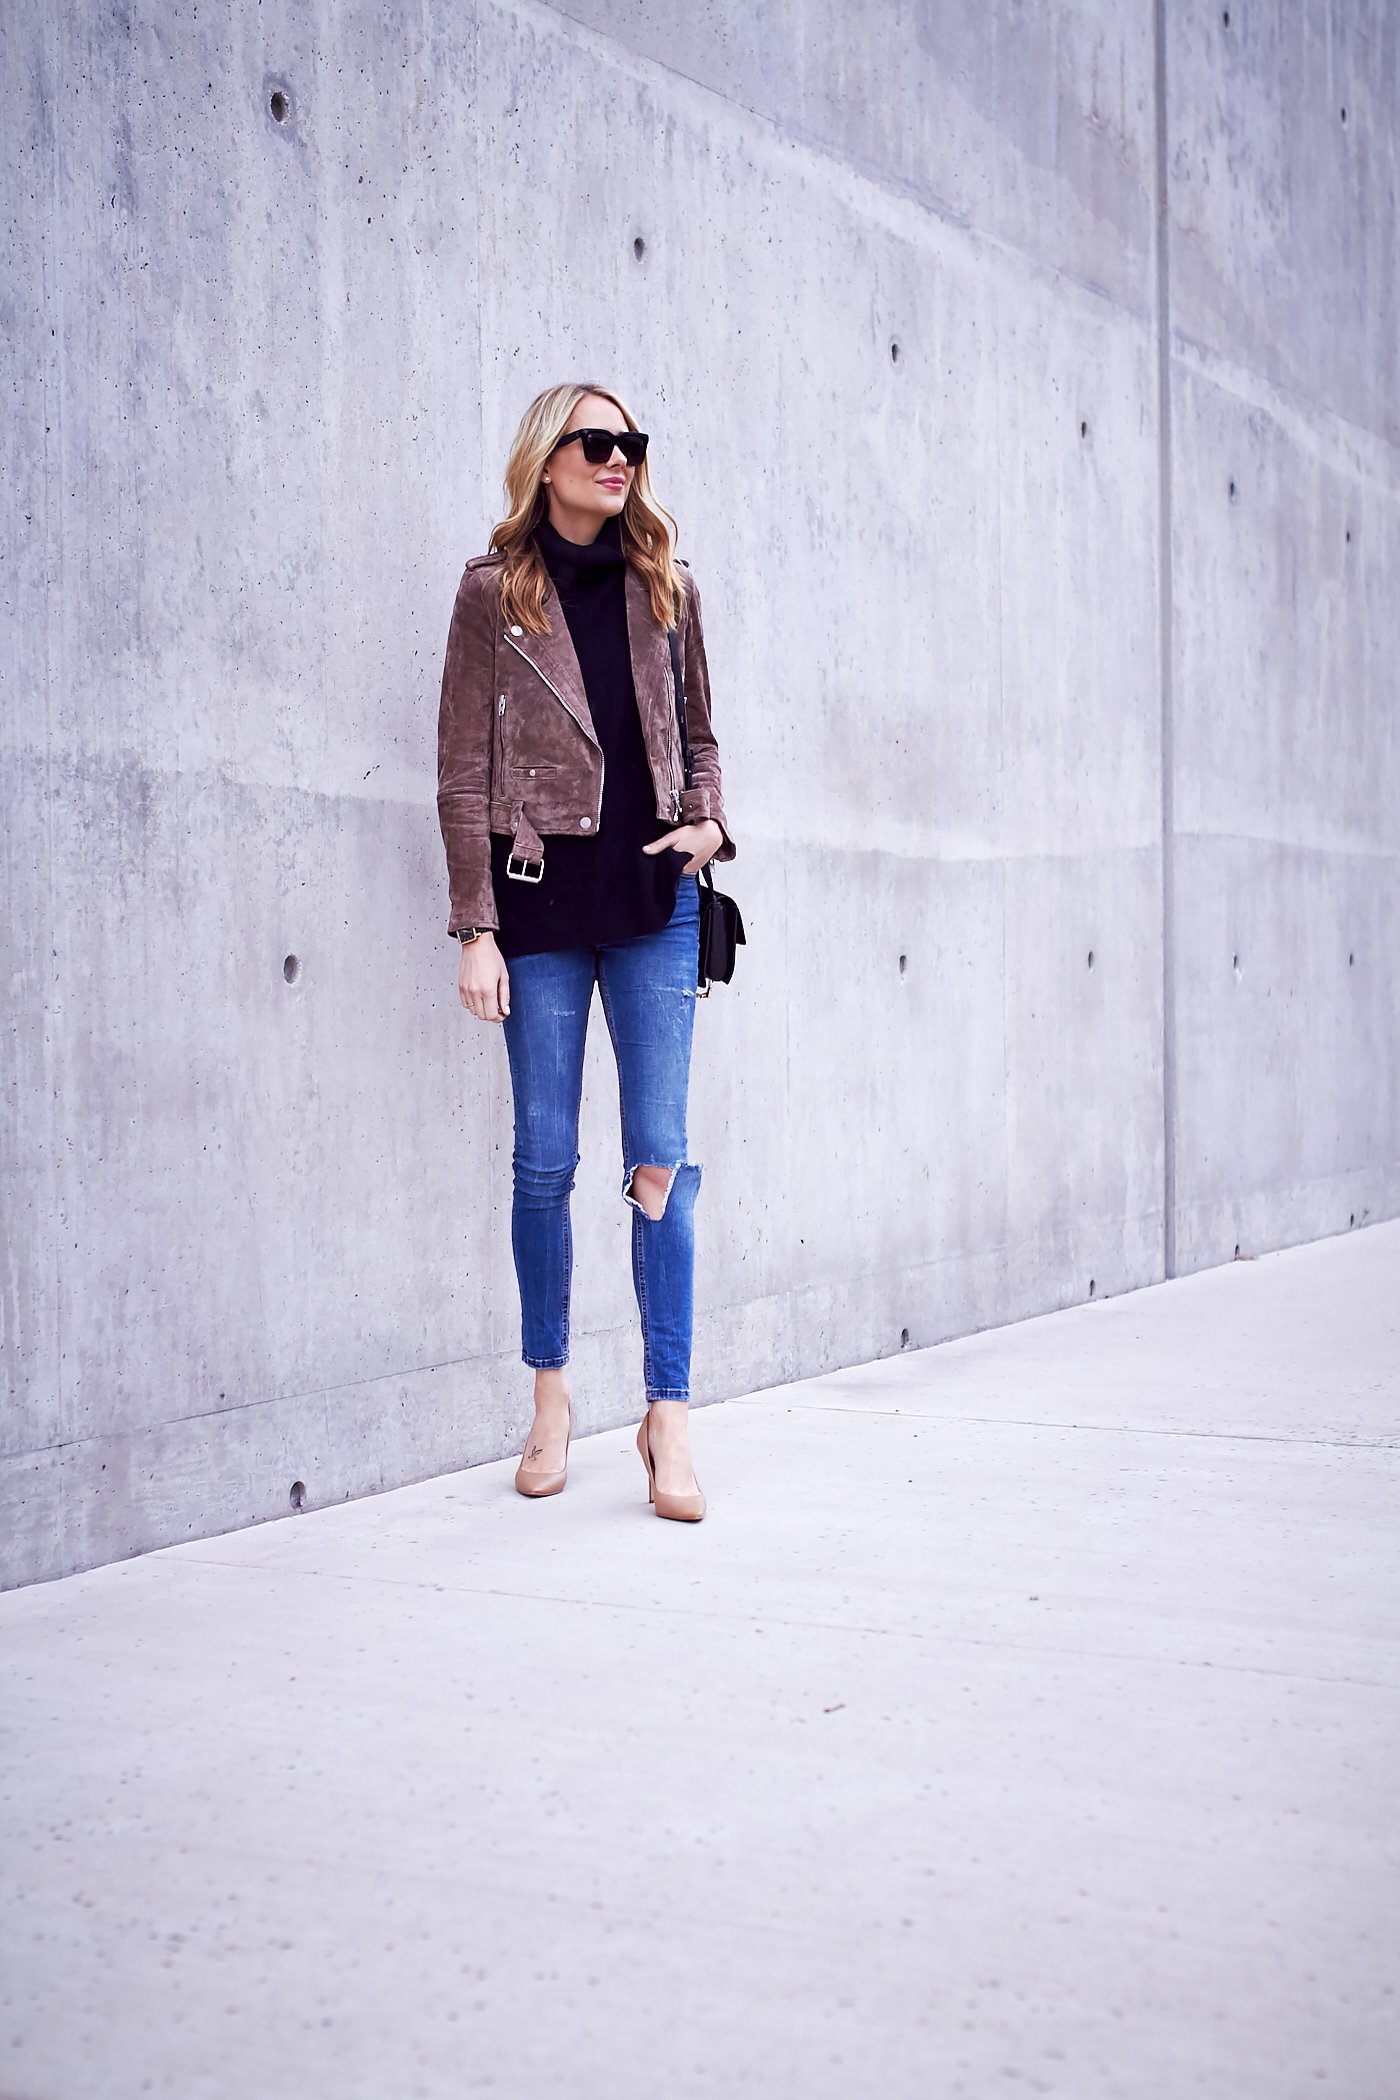 fashion-jackson-blanknyc-morning-suede-moto-jacket-black-sweater-ripped-denim-jeans-nude-pumps